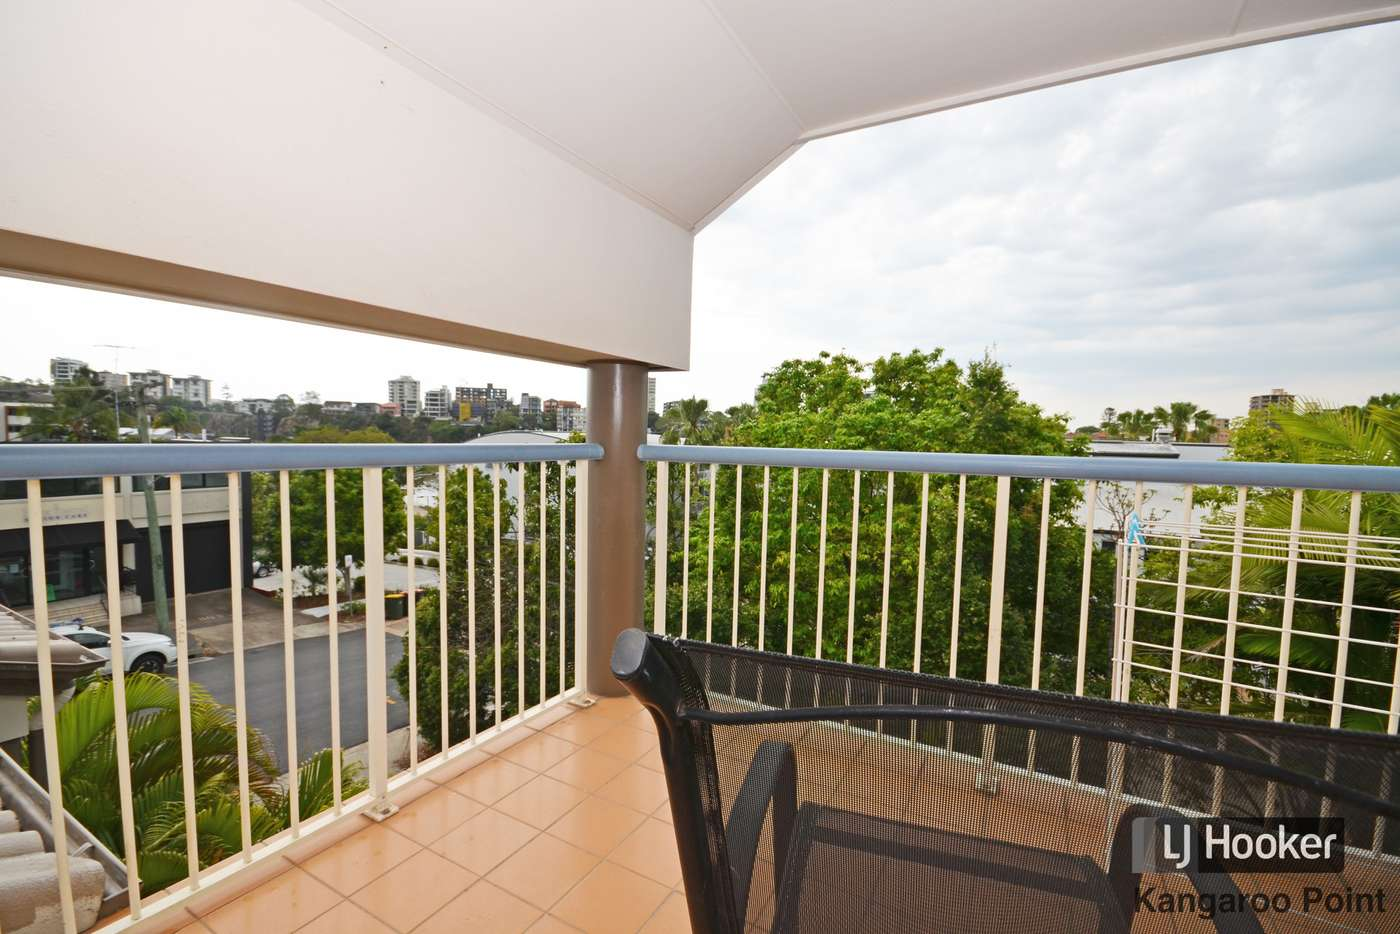 Sixth view of Homely unit listing, 23/45 Wharf Street, Kangaroo Point QLD 4169